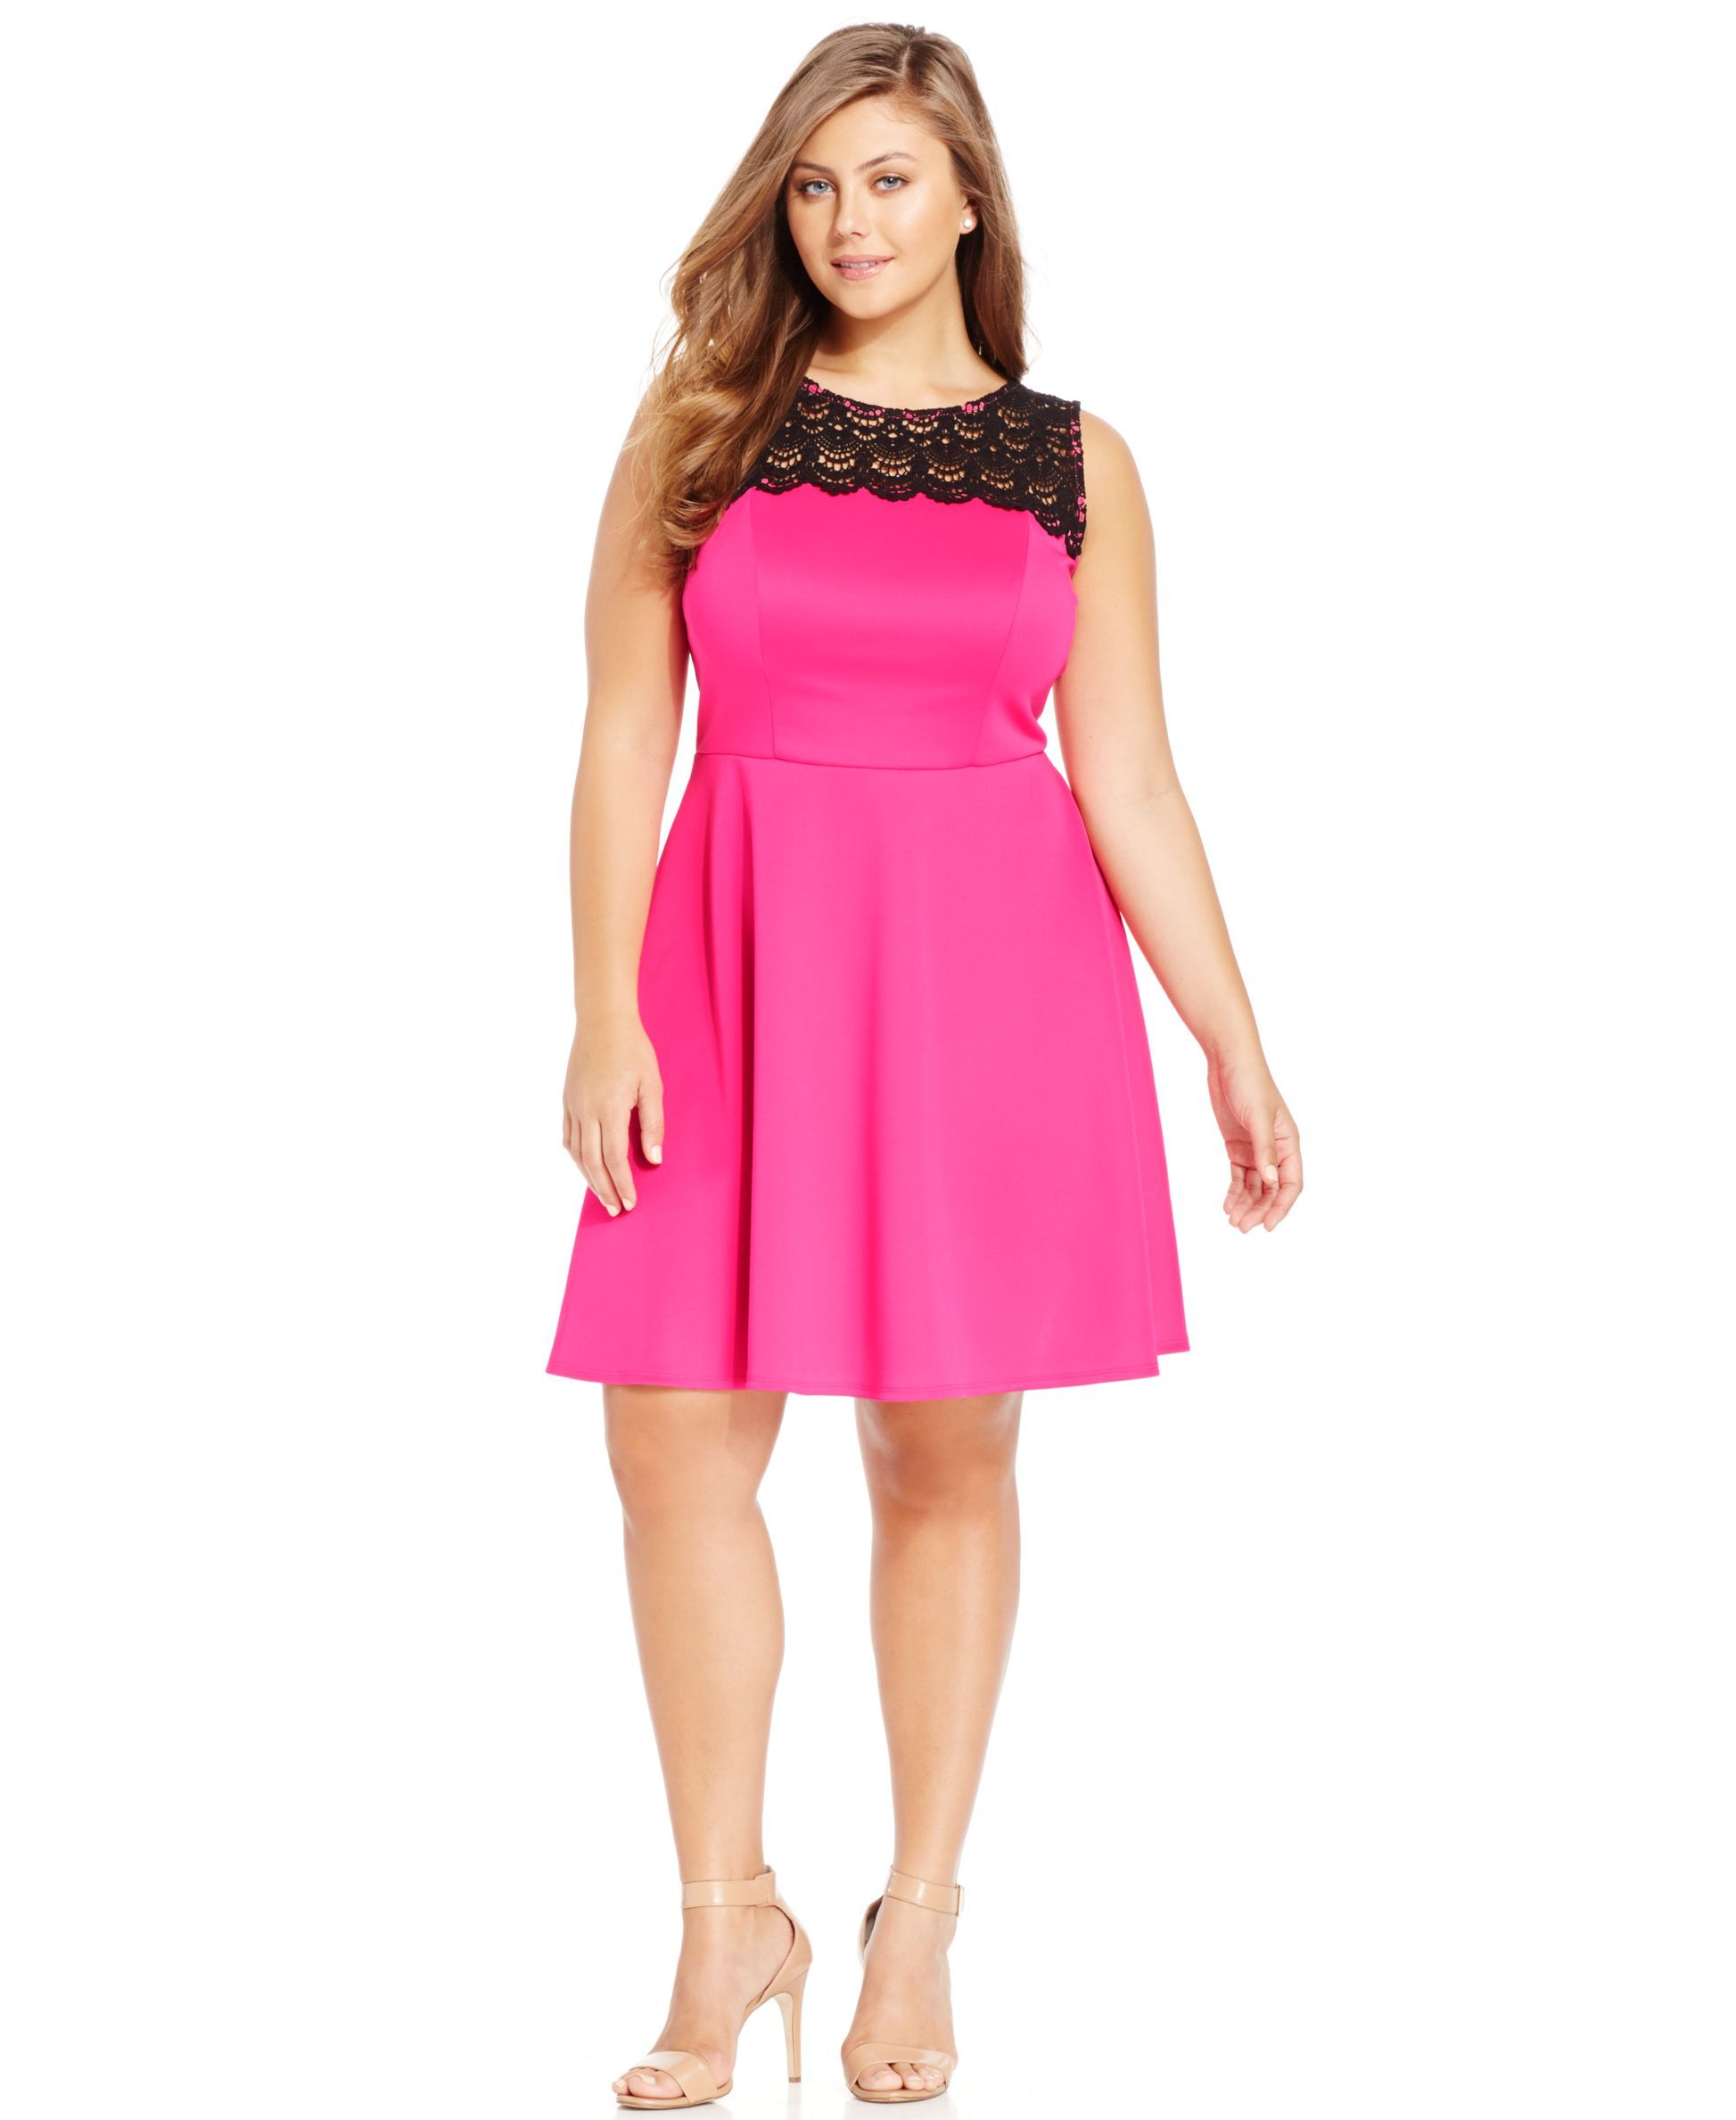 Trixxi Plus Size Lace Illusion A-Line Dress | Products | Pinterest ...